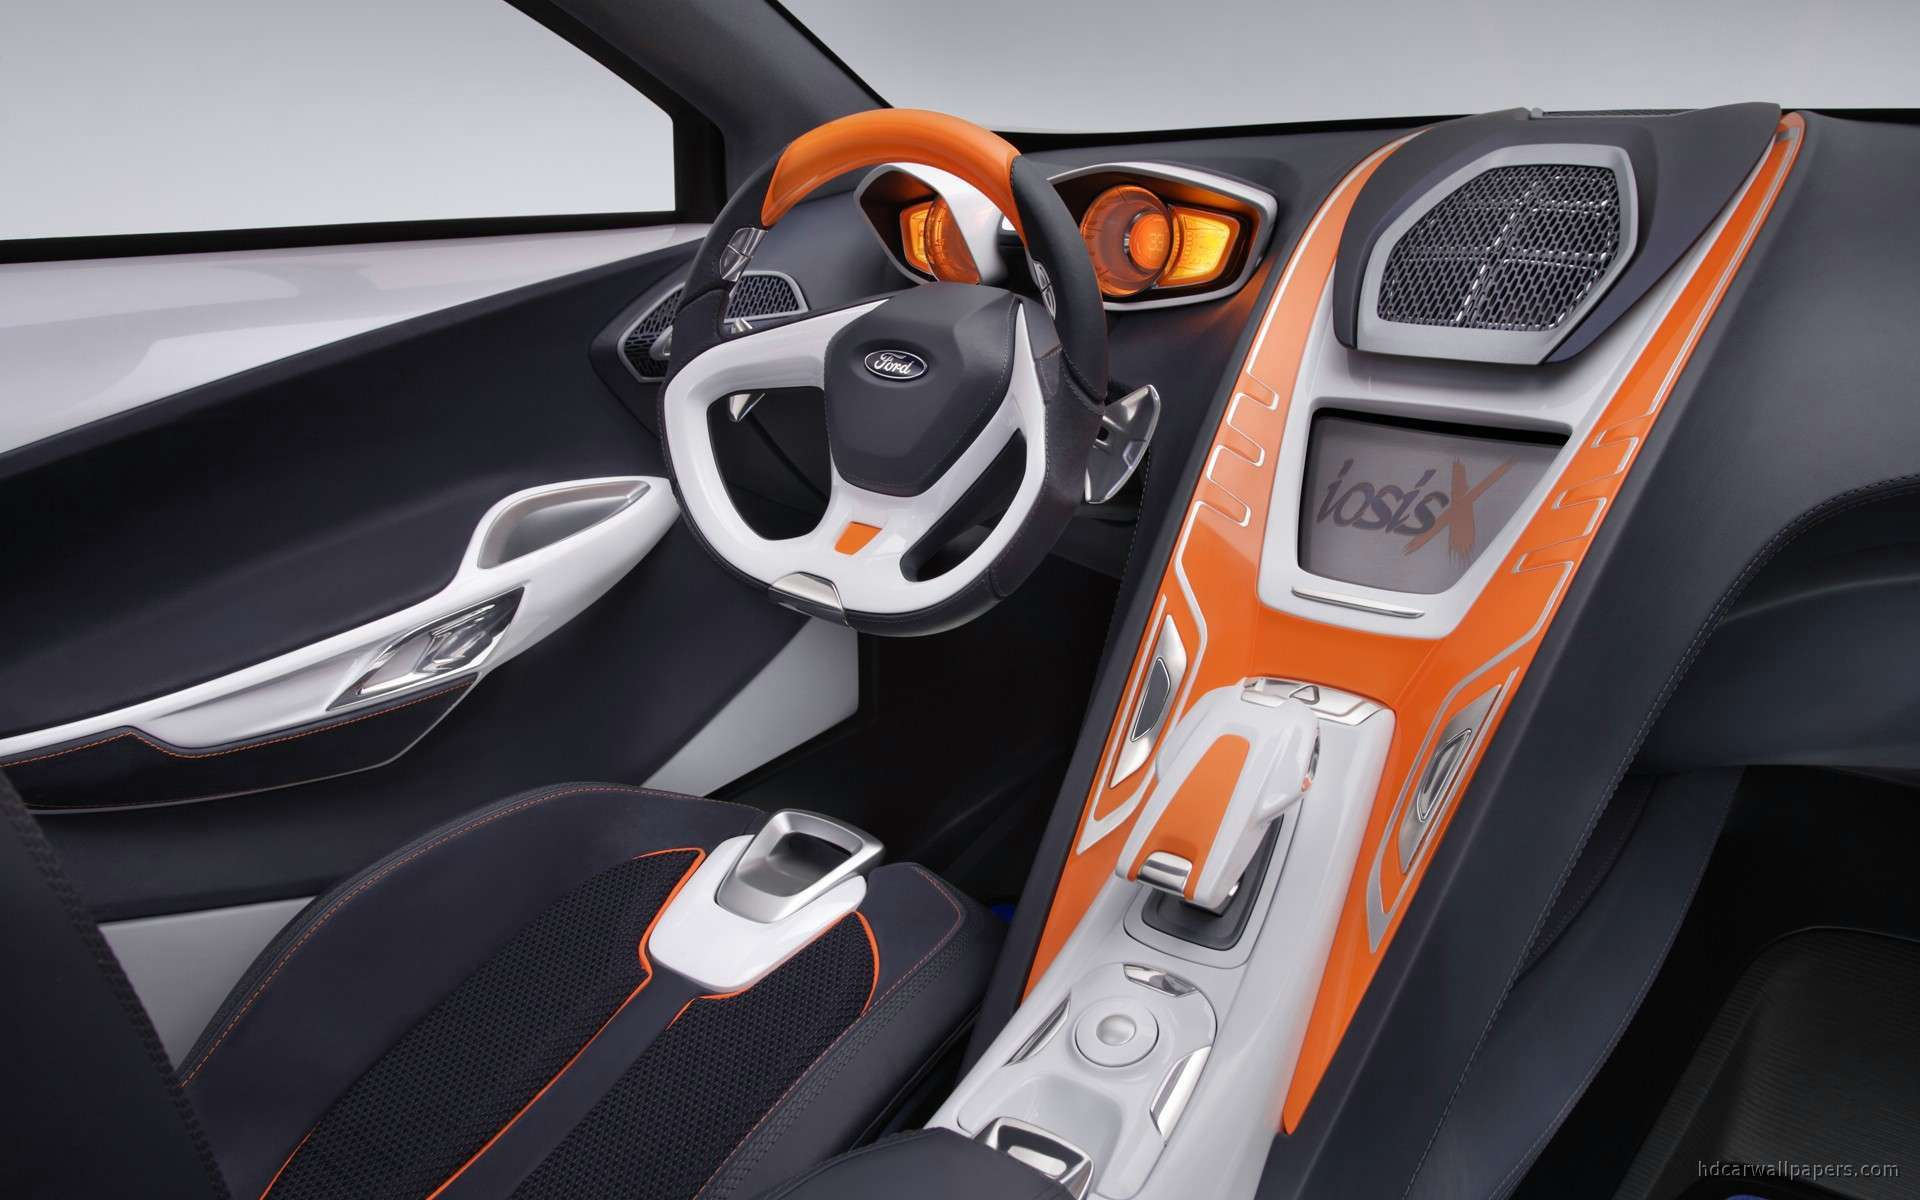 2017 Ford iosis Concept photo - 1